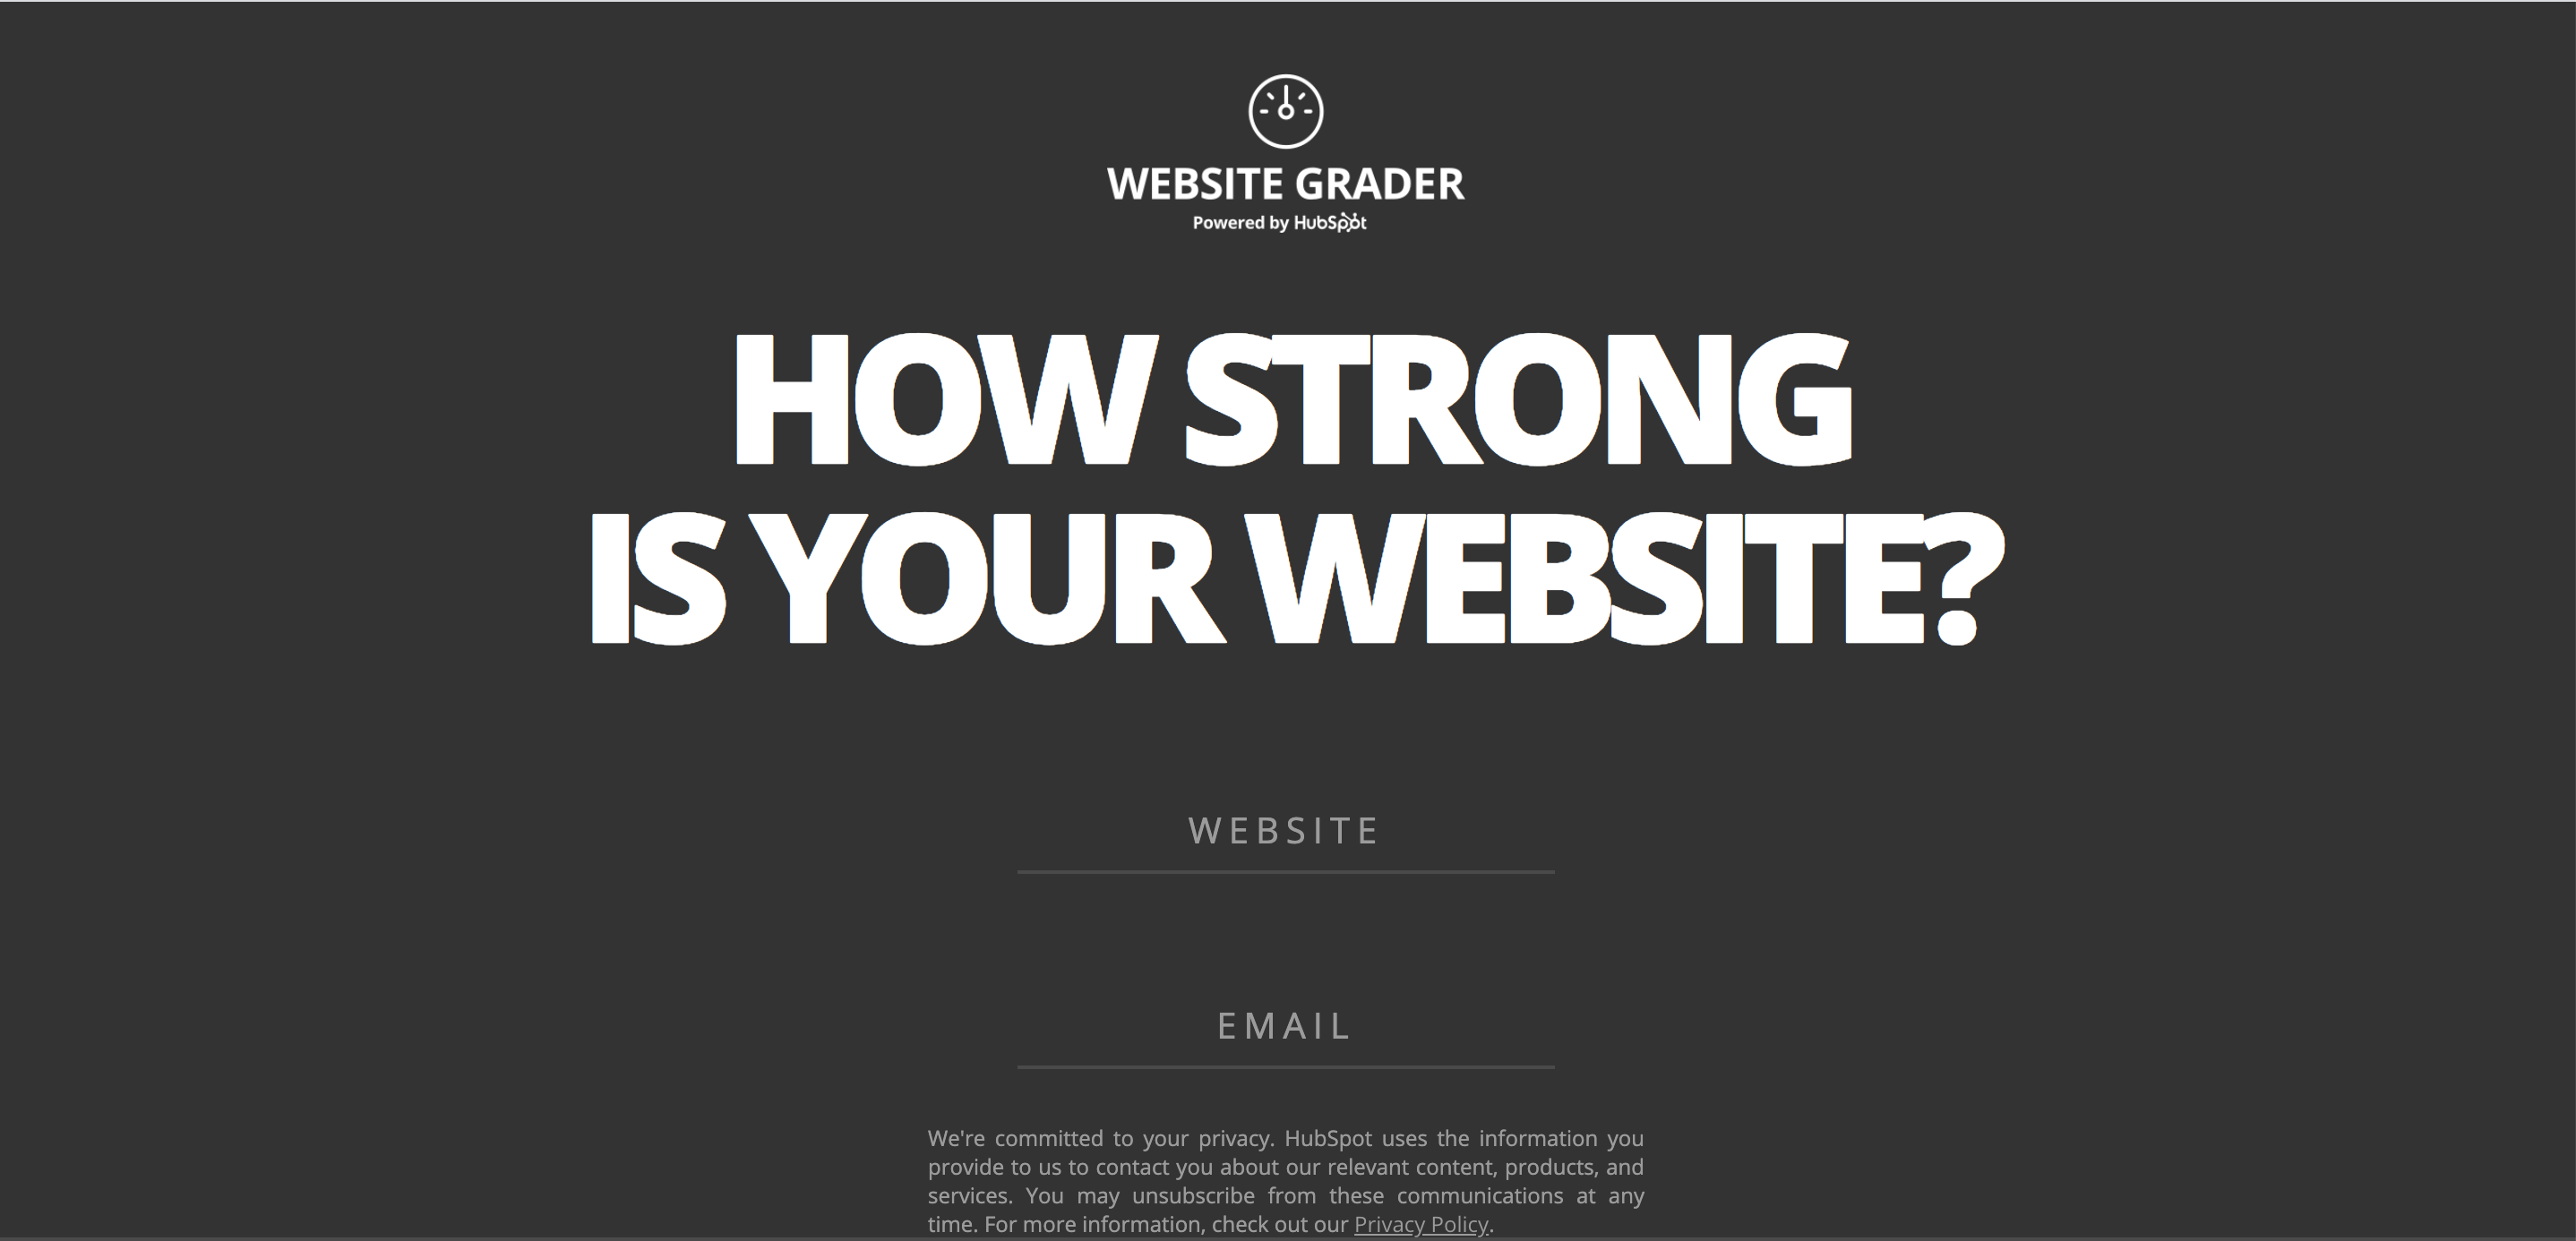 HubSpot Website Grader